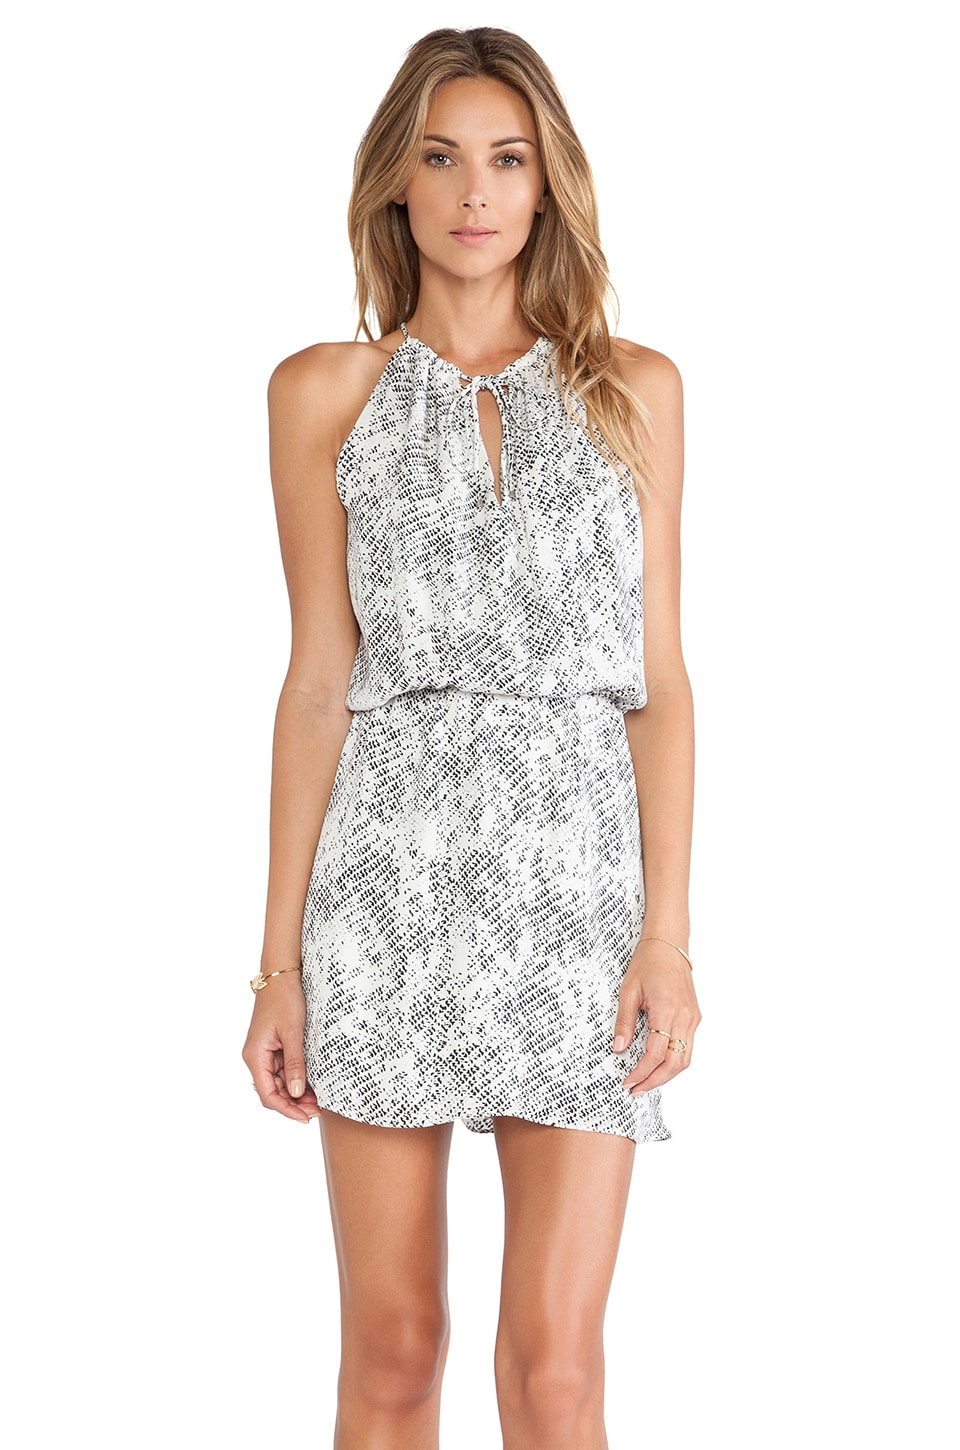 Parker Fleur Dress in Silver Avalanche